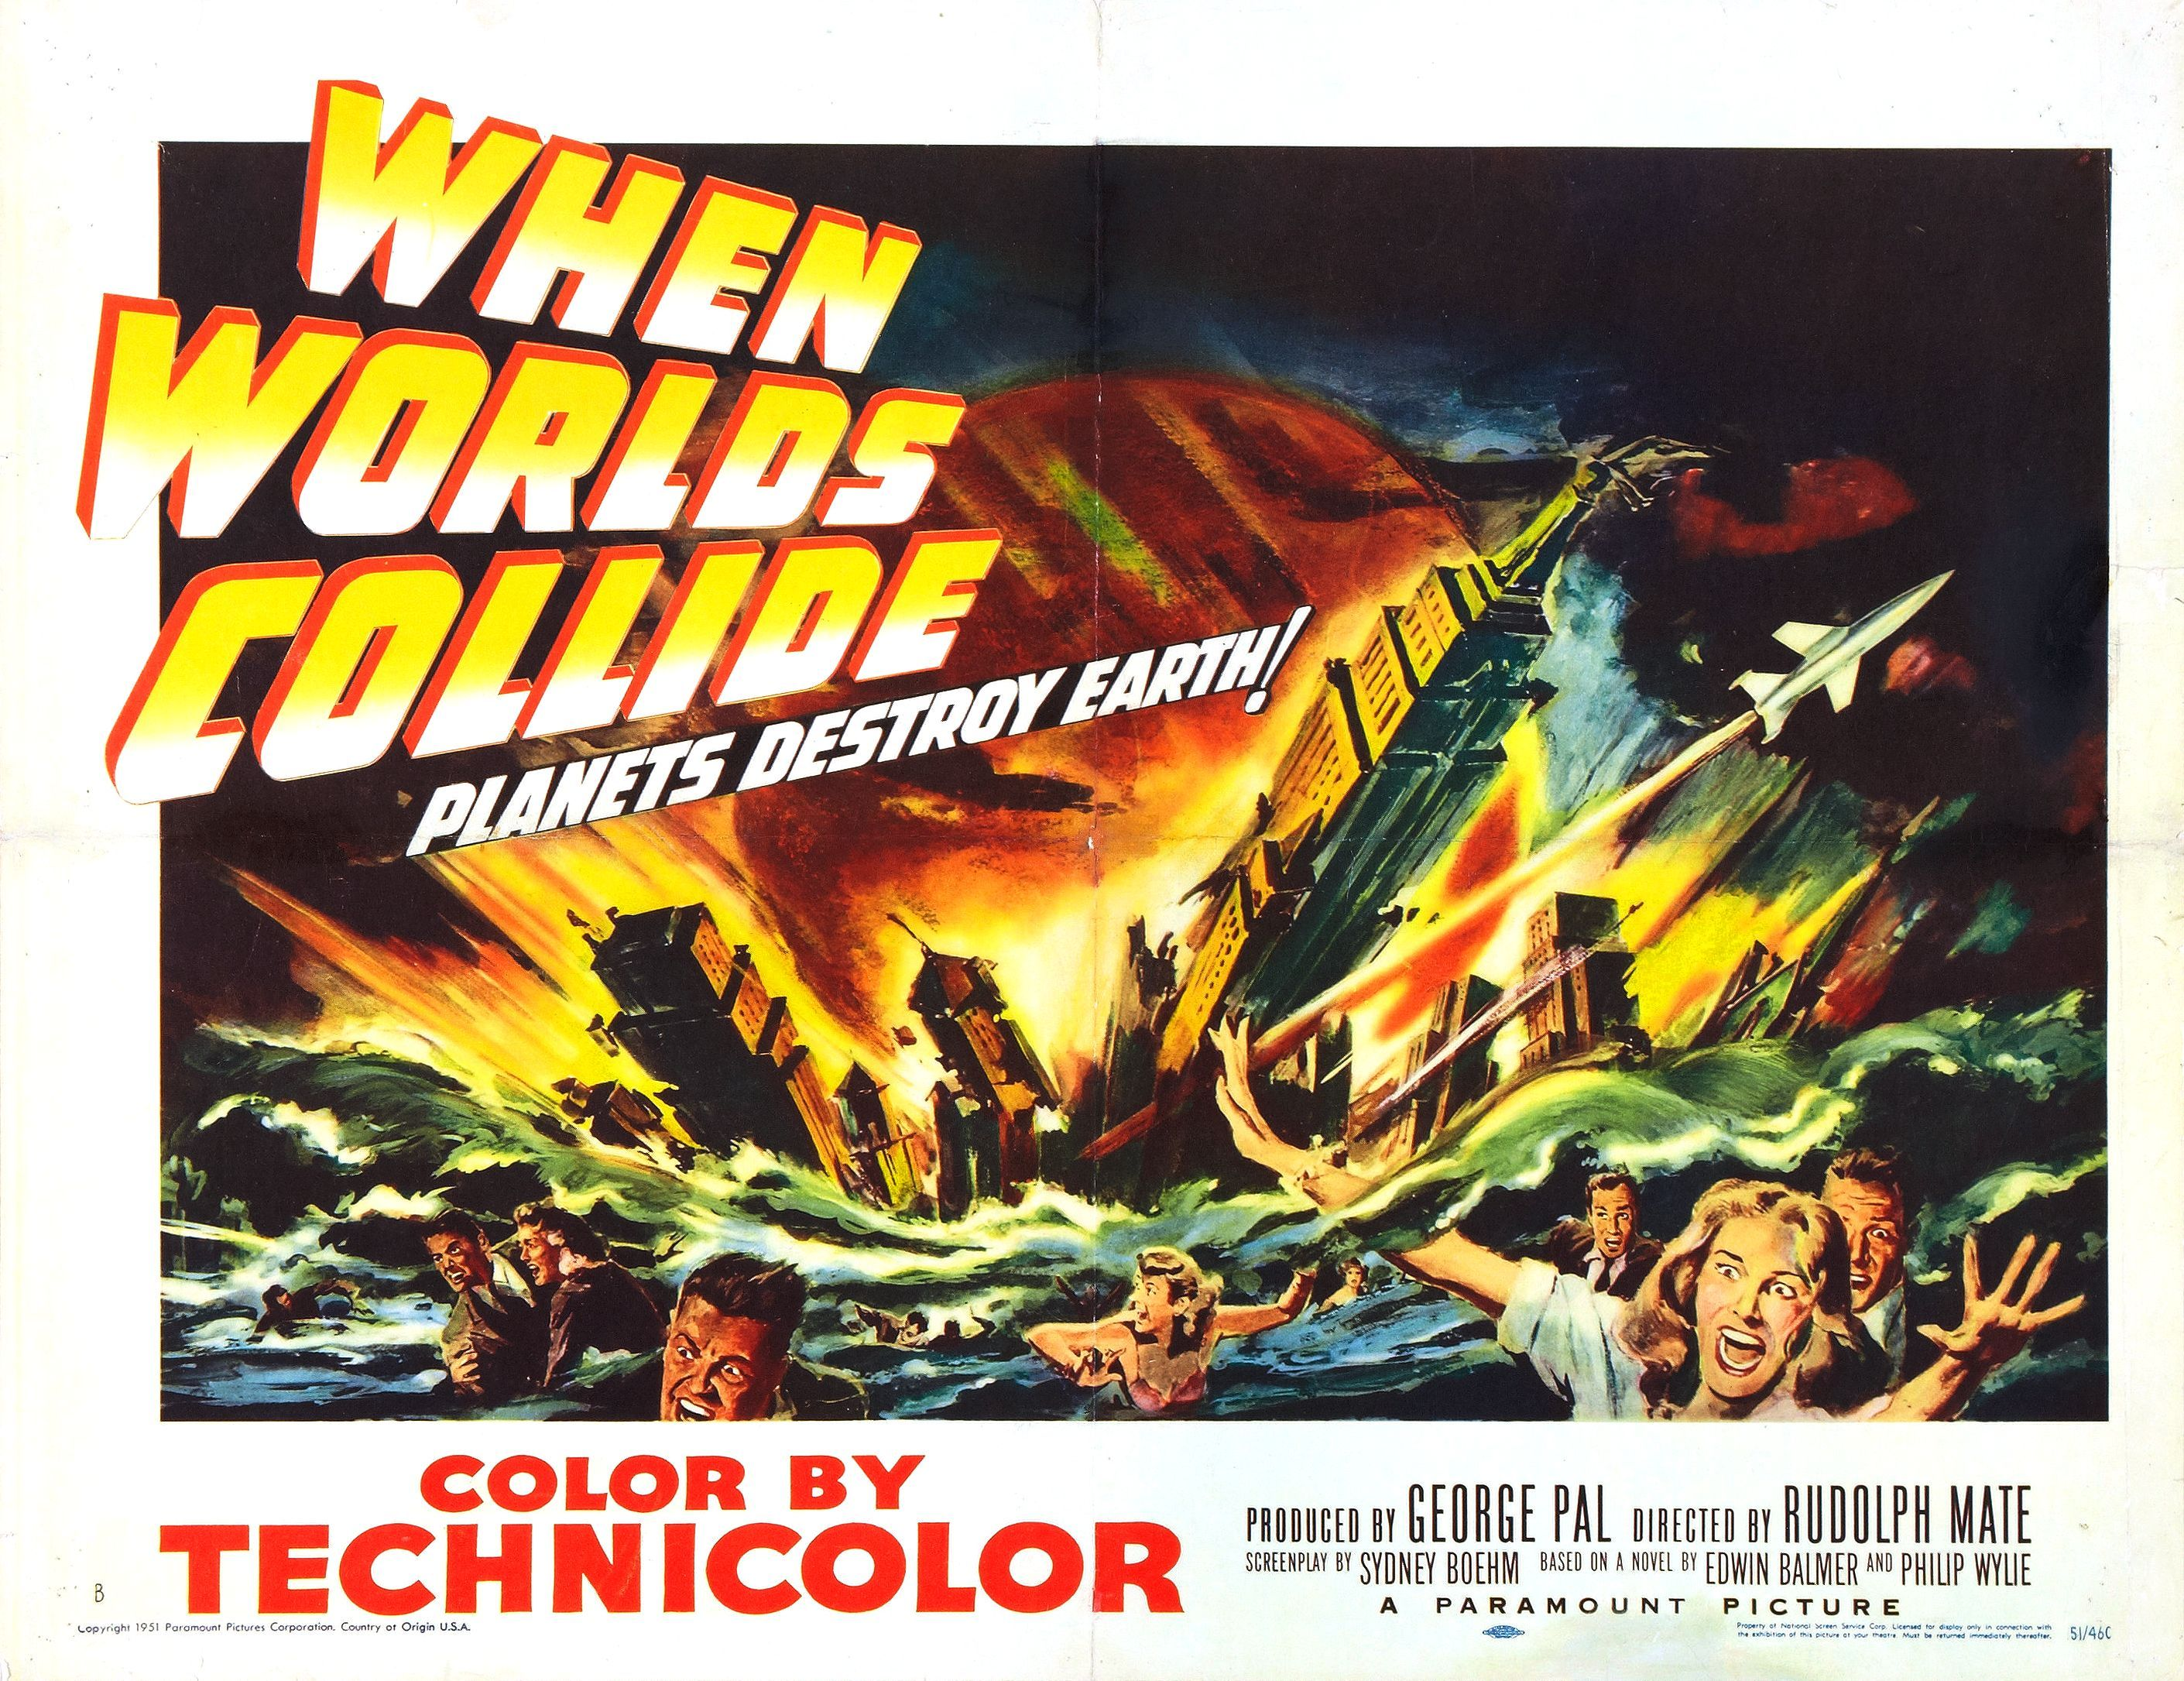 When Worlds collide vintage sci-fi movie poster print